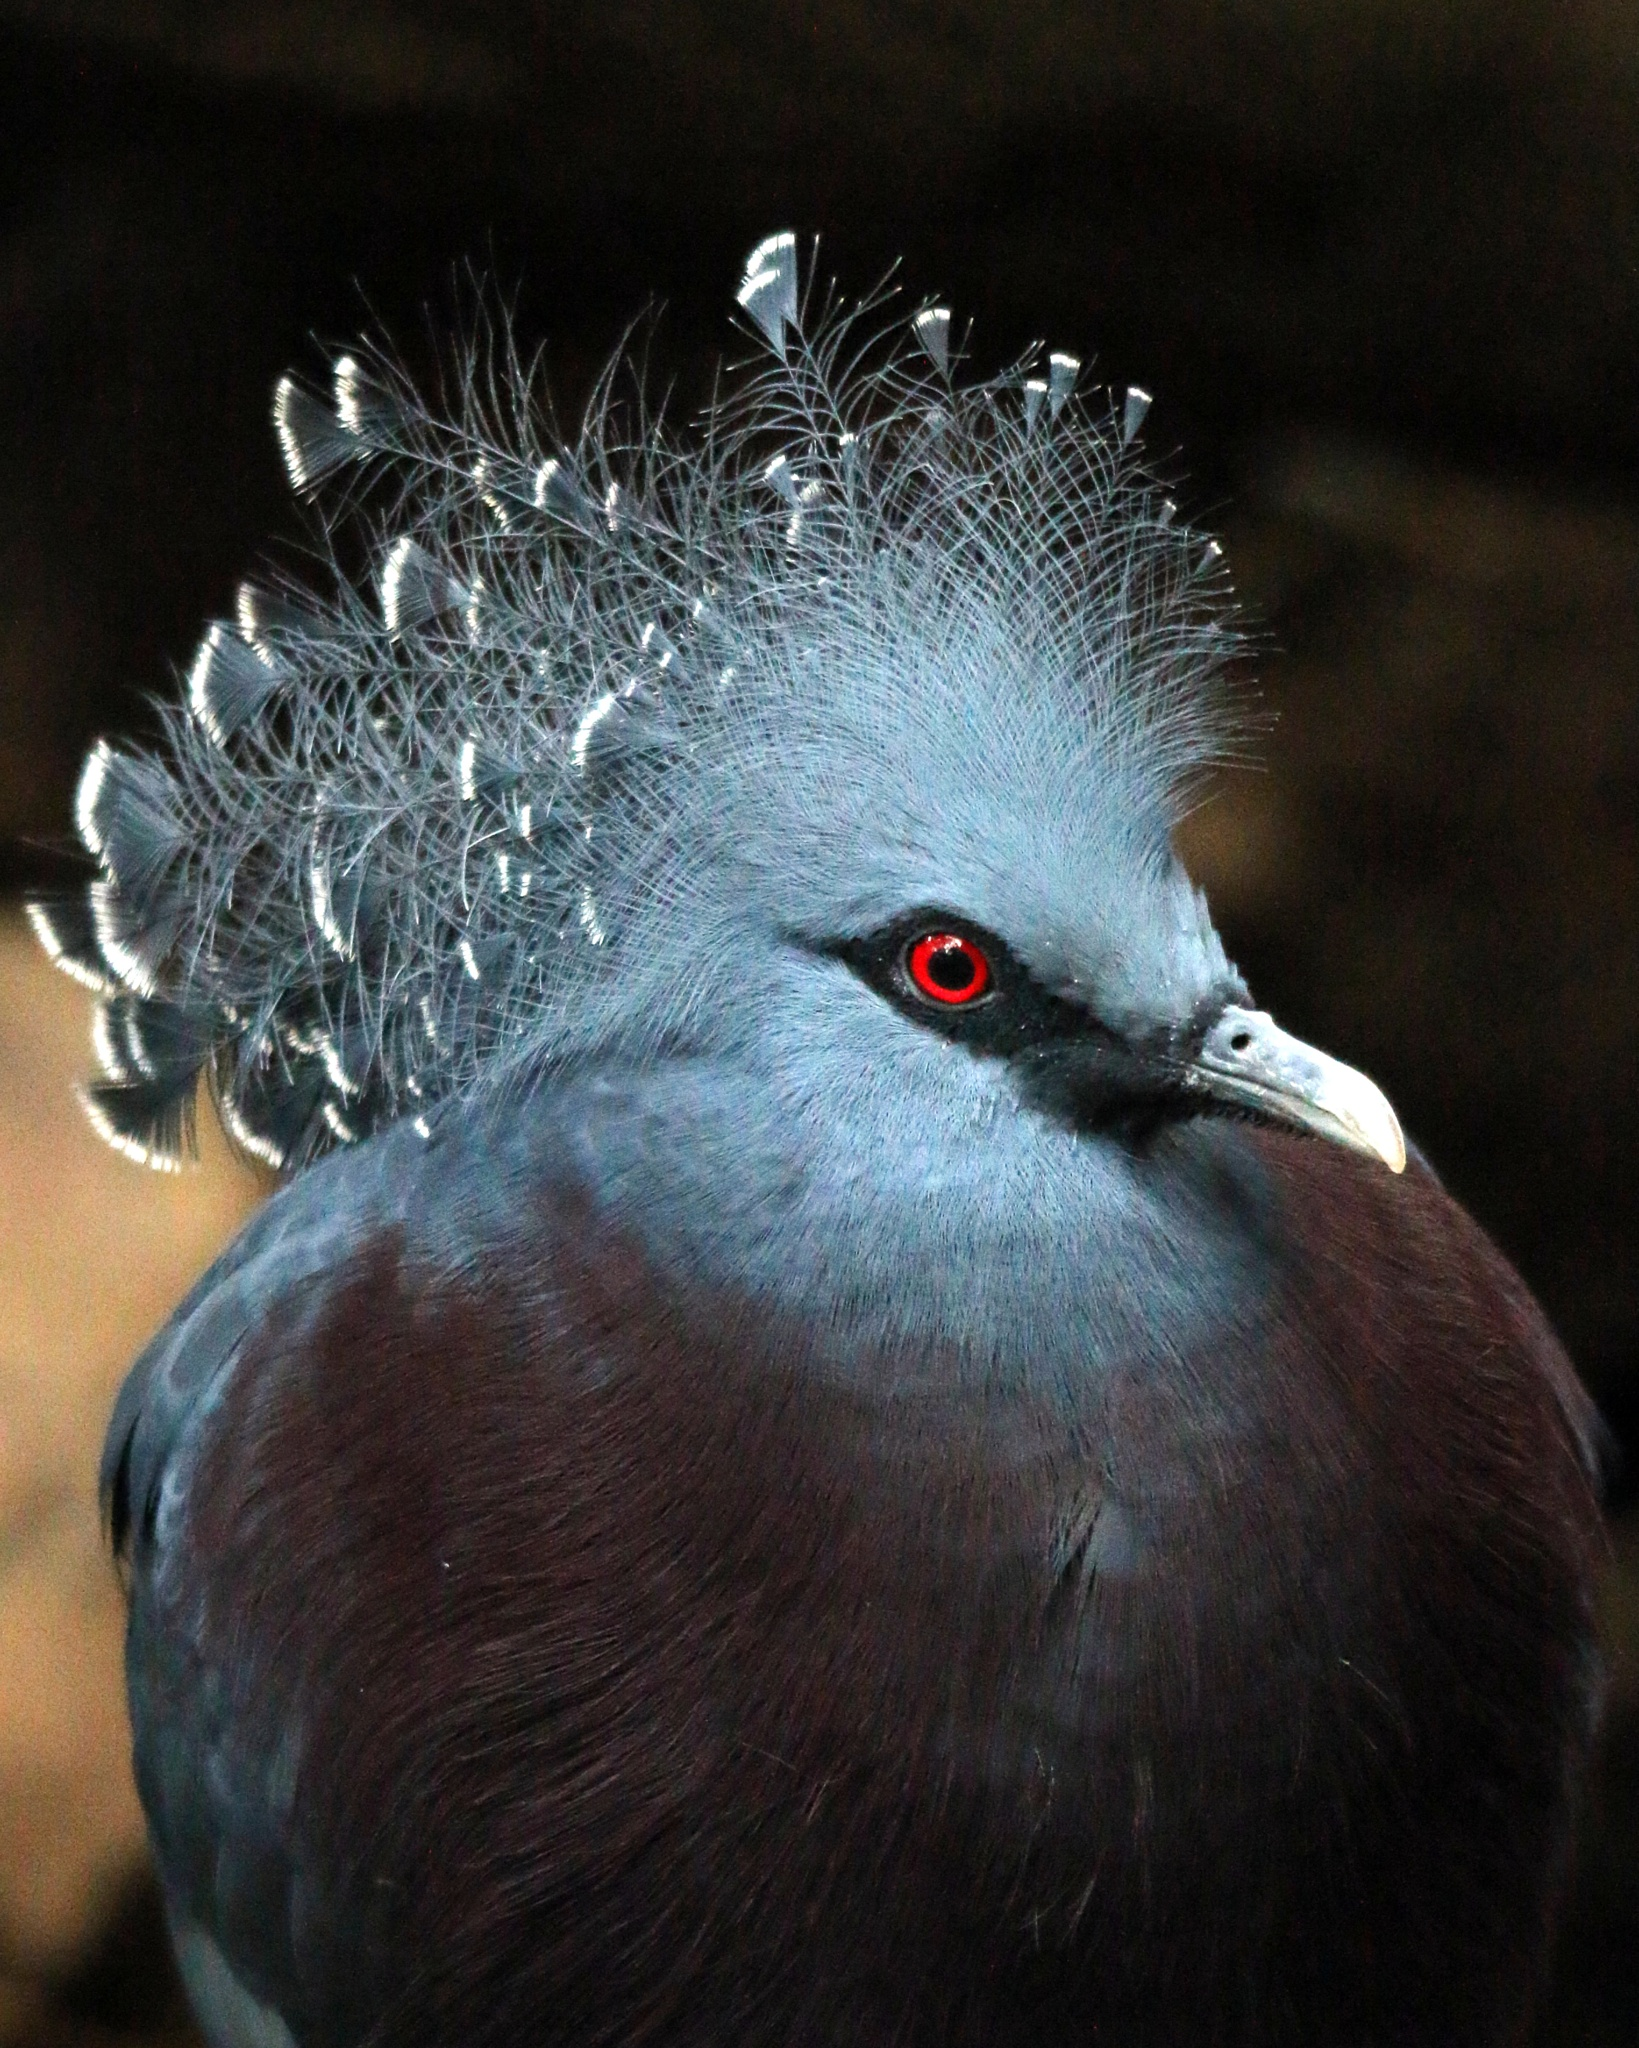 Victoria Crown Pigeon by Ralphharvey